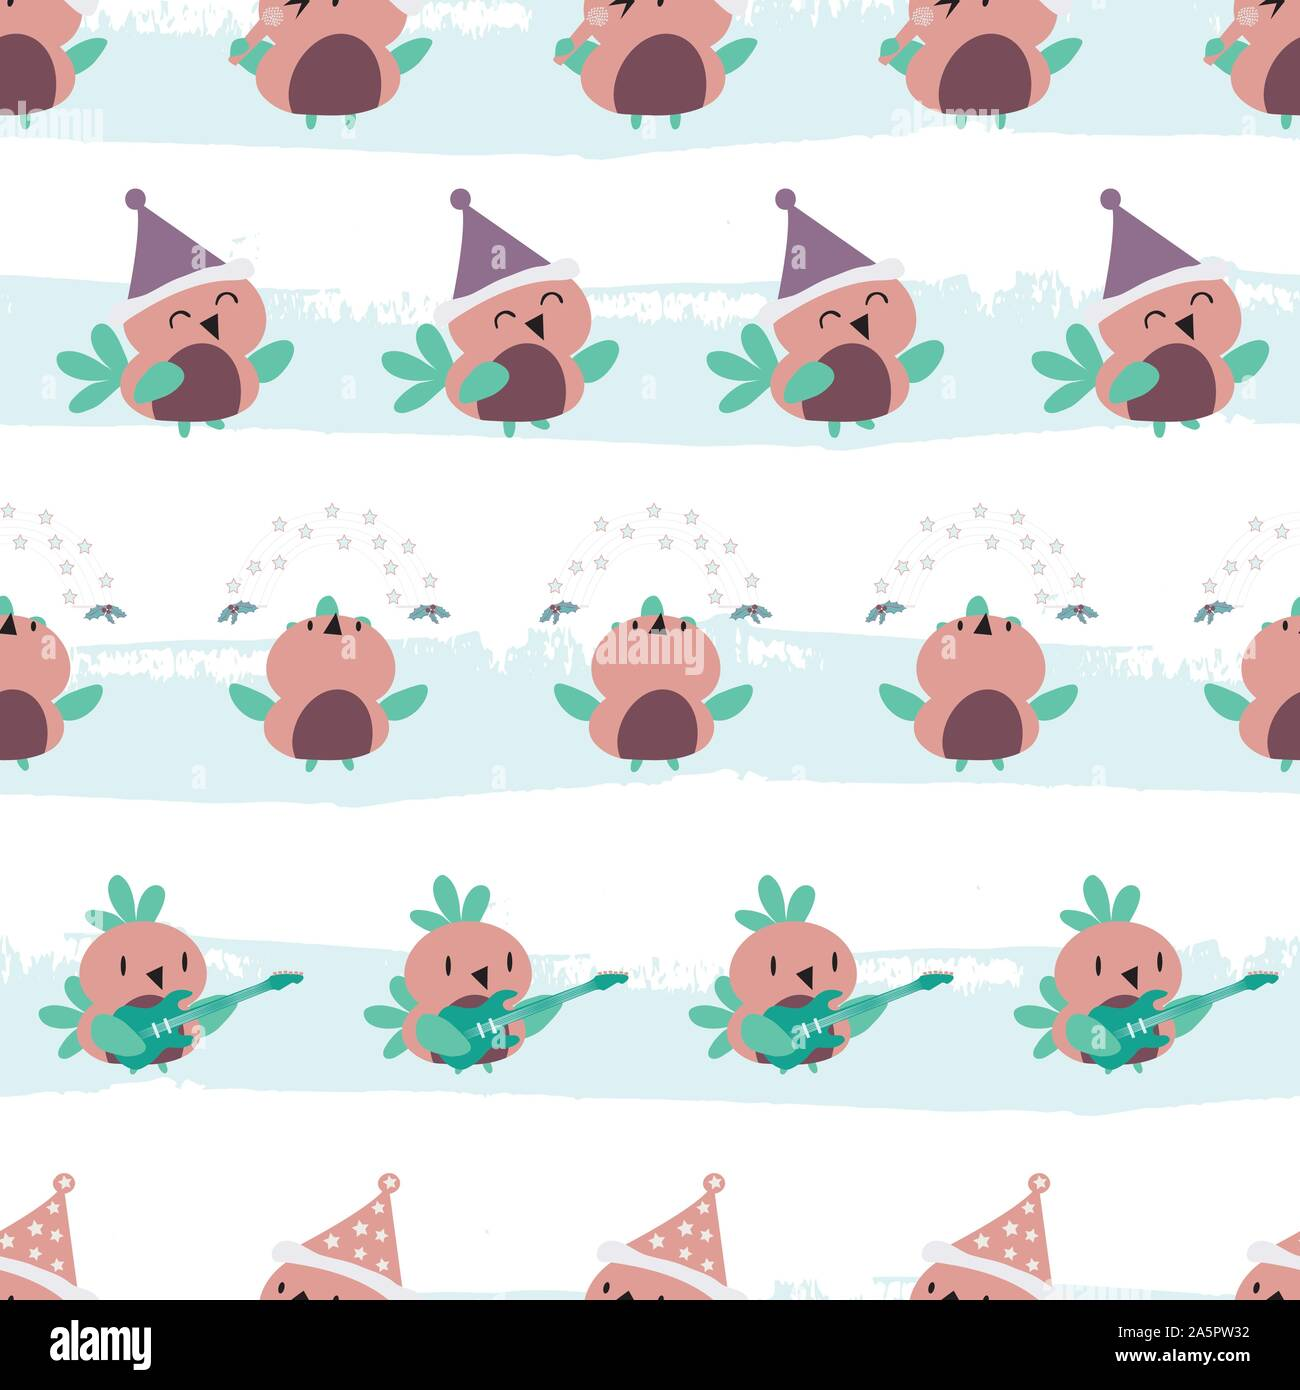 Cute cartoon robins in purple, pink and teal having fun dancing, singing and playing guitar. Seamless vector pattern on grunge effect striped ice blue Stock Vector